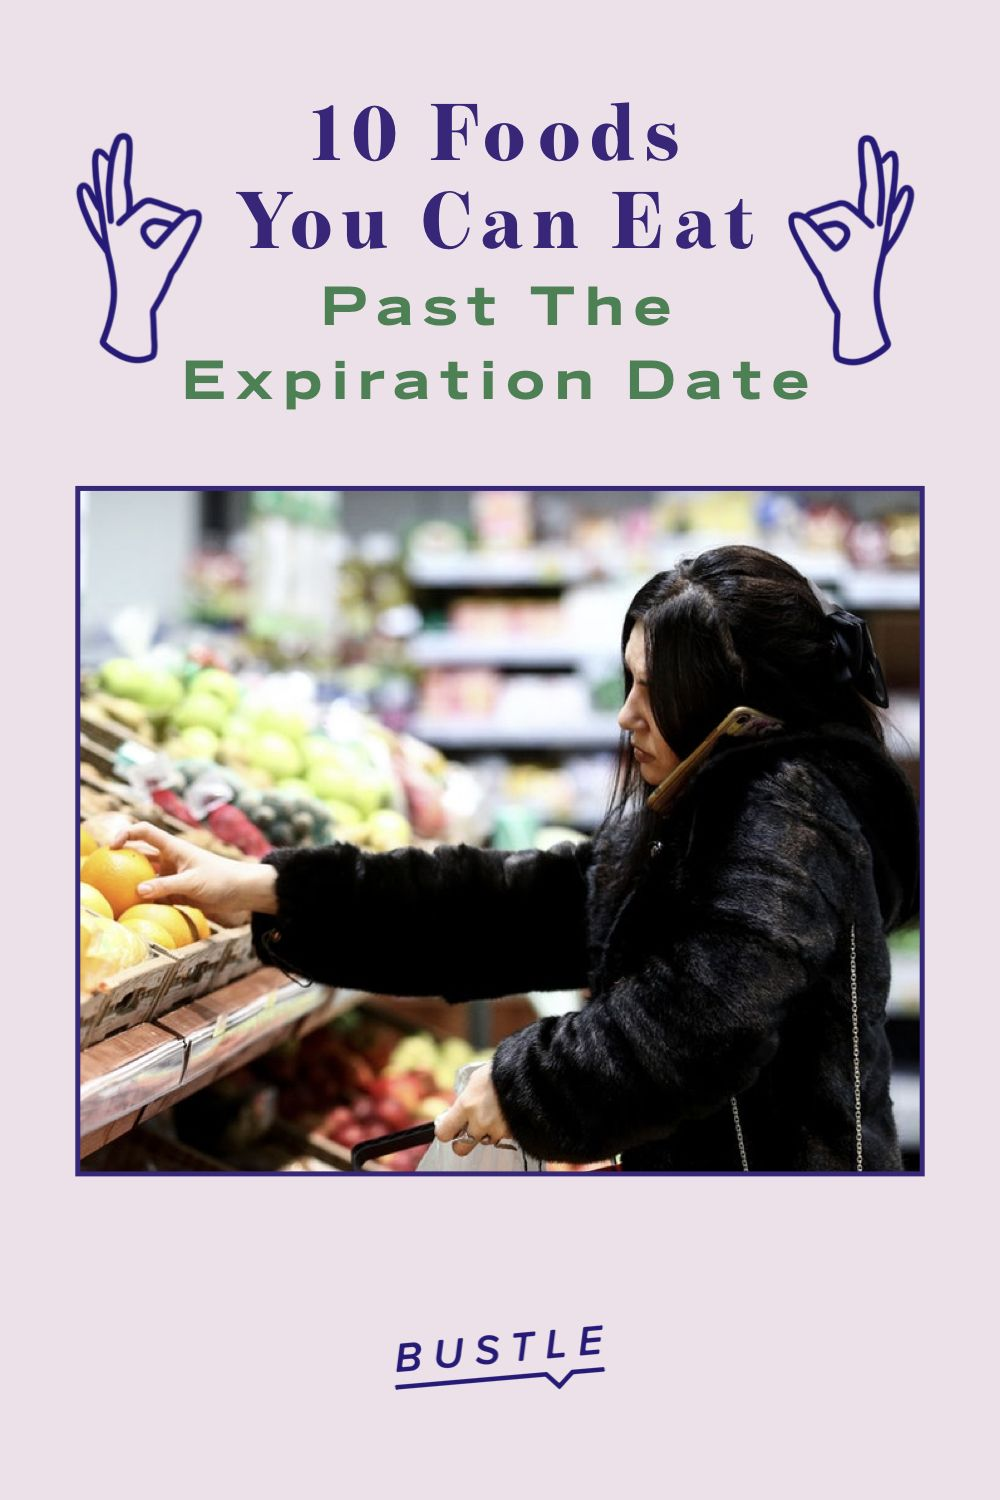 10 Foods You Can Eat Past The Expiration Date